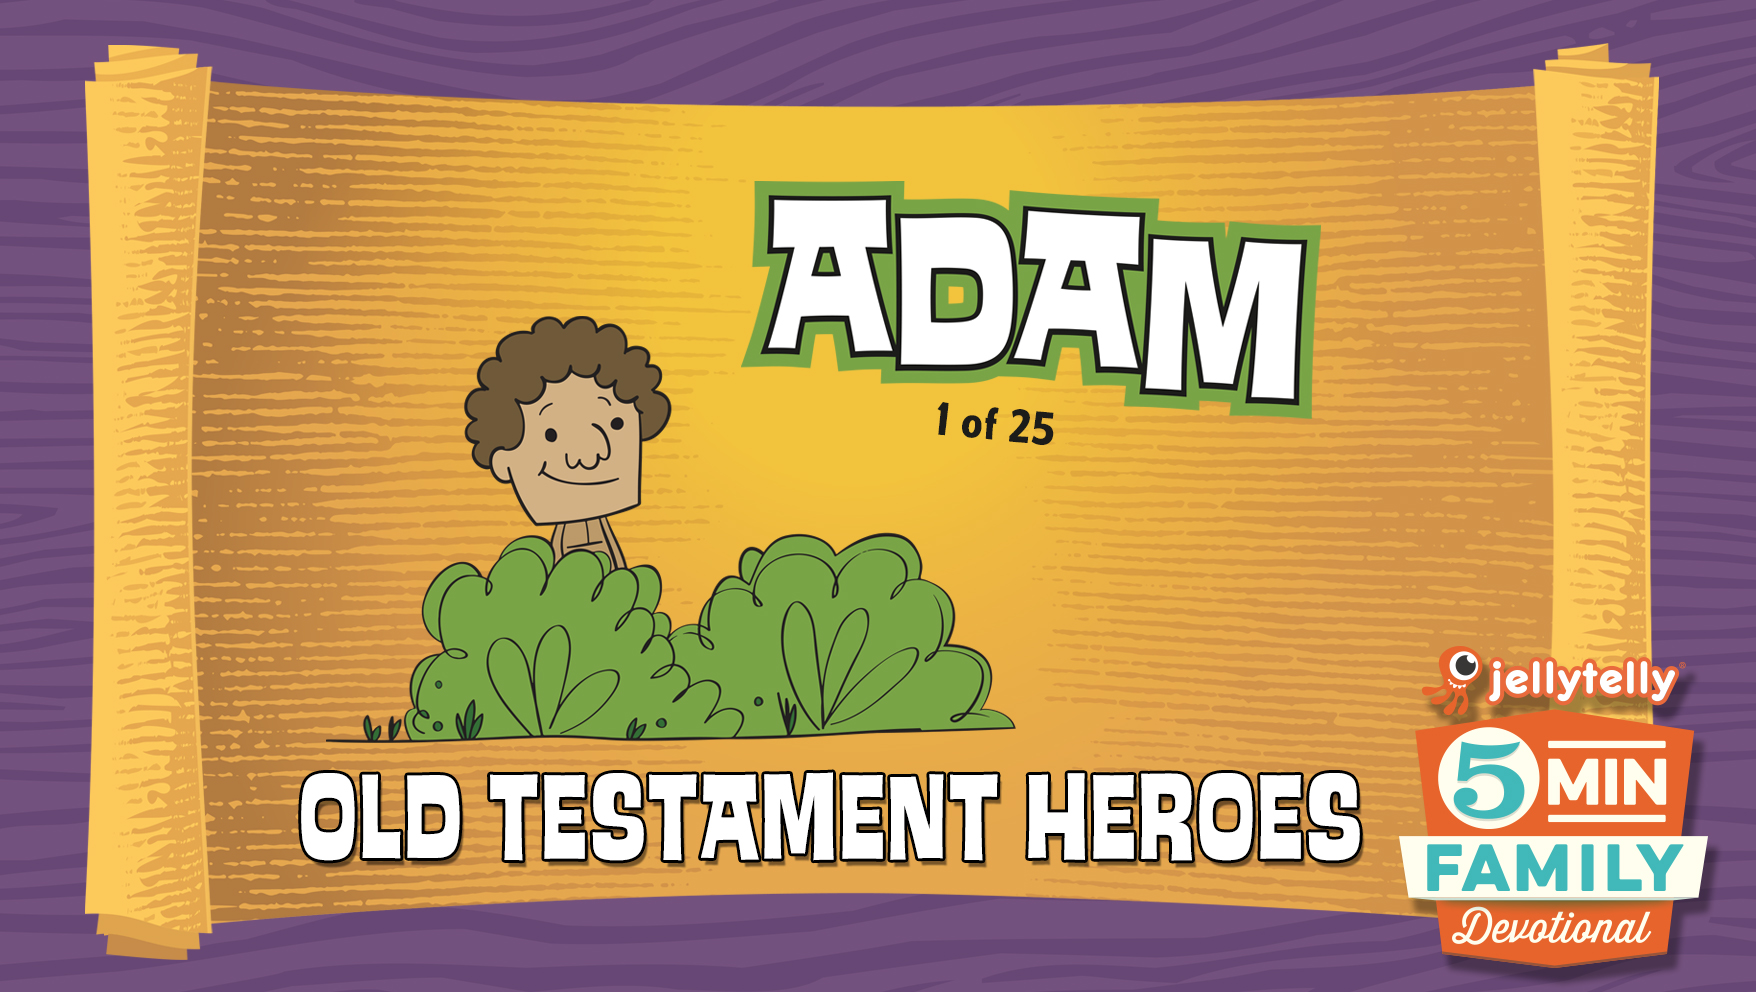 Adam: Old Testament Heroes - 5 Minute Family Devotional